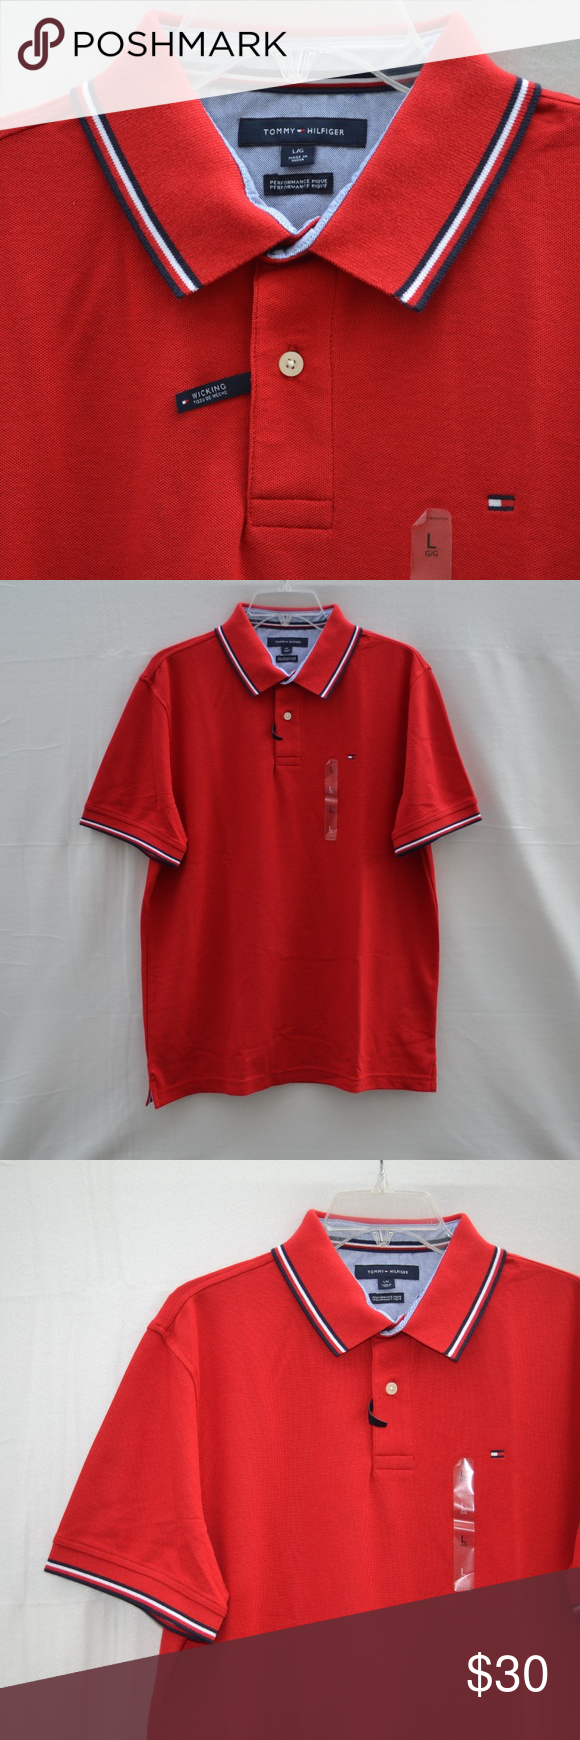 9b1db0b2 TOMMY HILFIGER Wicking Performance Pique Polo Red TOMMY HILFIGER Men's  Wicking Performance Pique Polo Shirt Red